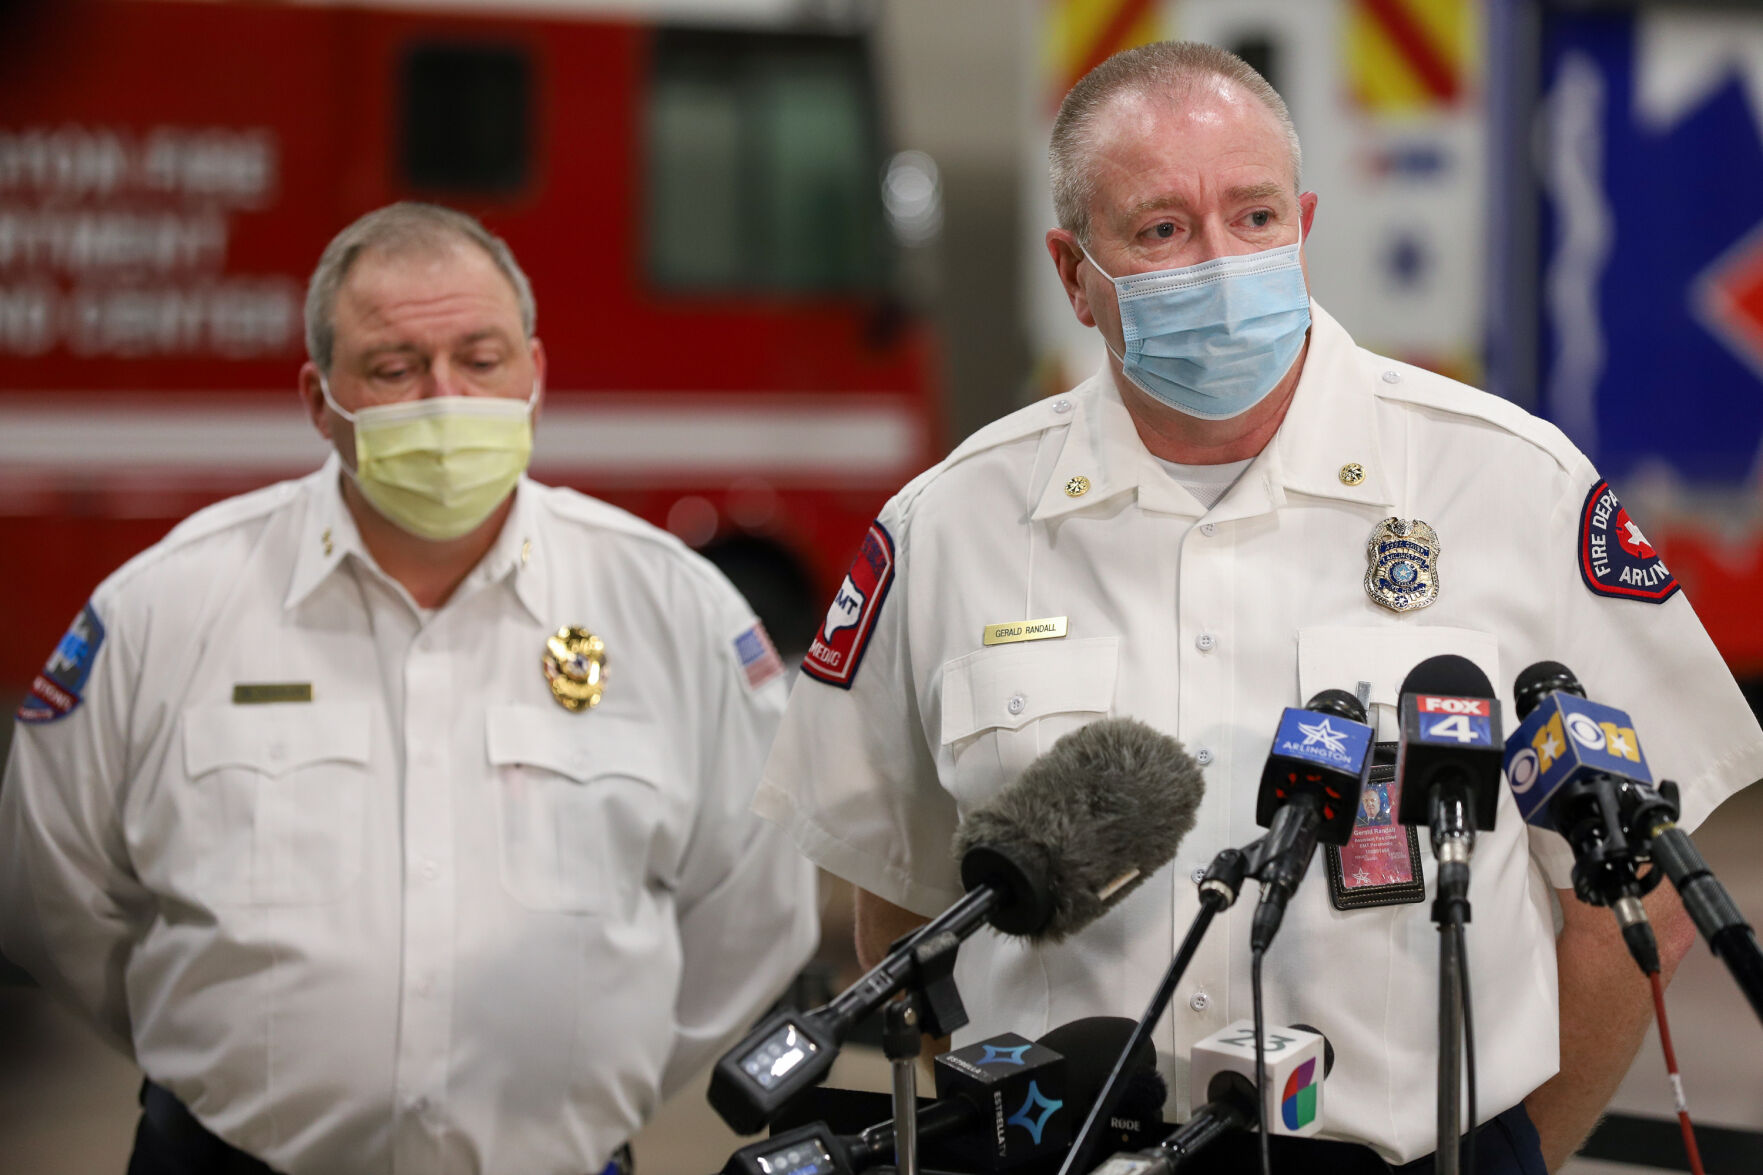 Arlington officials wait for 3,000 COVID-19 vaccine doses to arrive, prepare for distribution